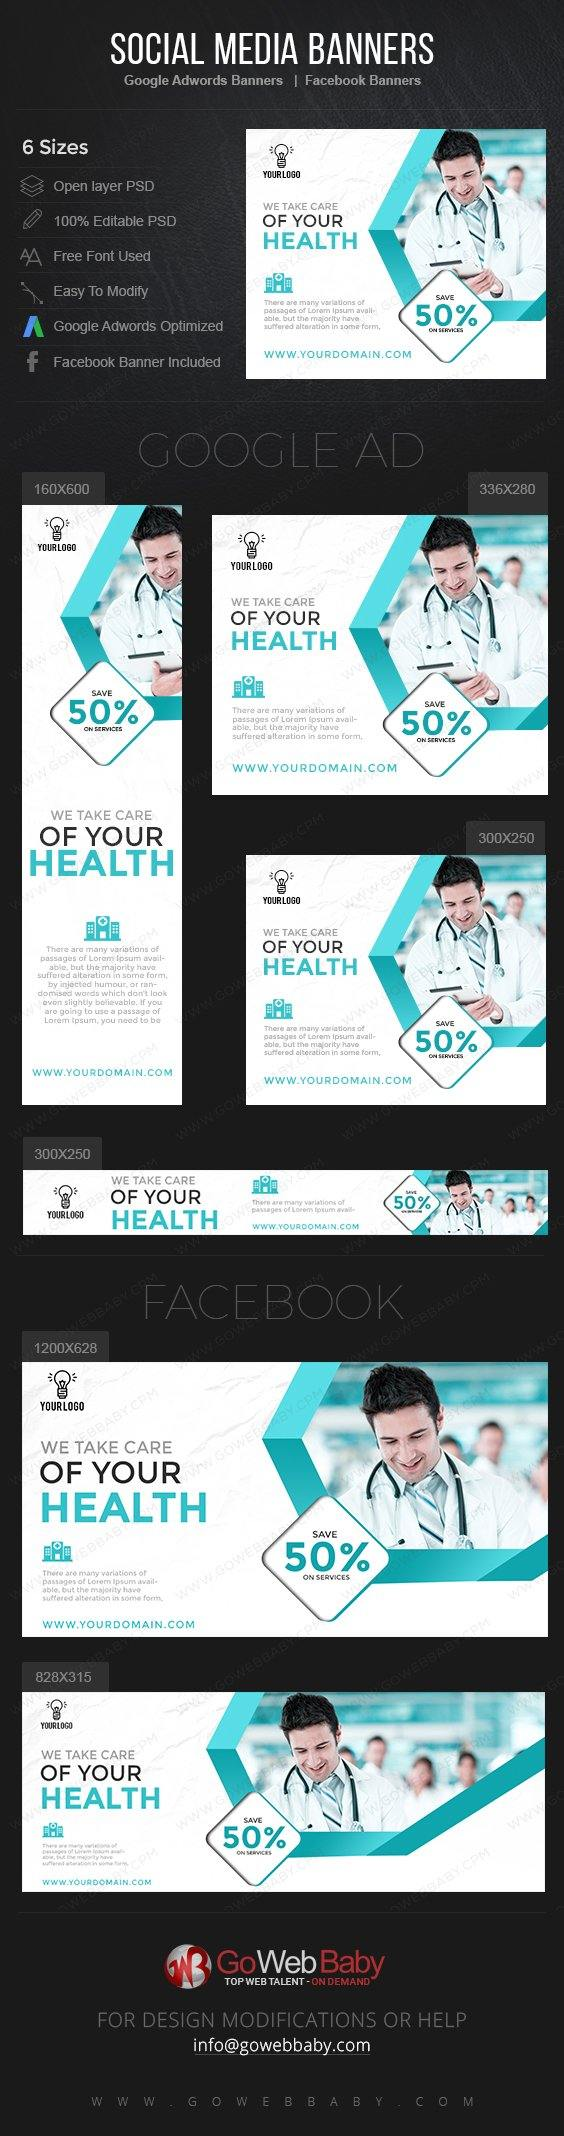 Google Adwords Display Banner with Facebook banners - Medical and Health For Website Marketing - GoWebBaby.Com